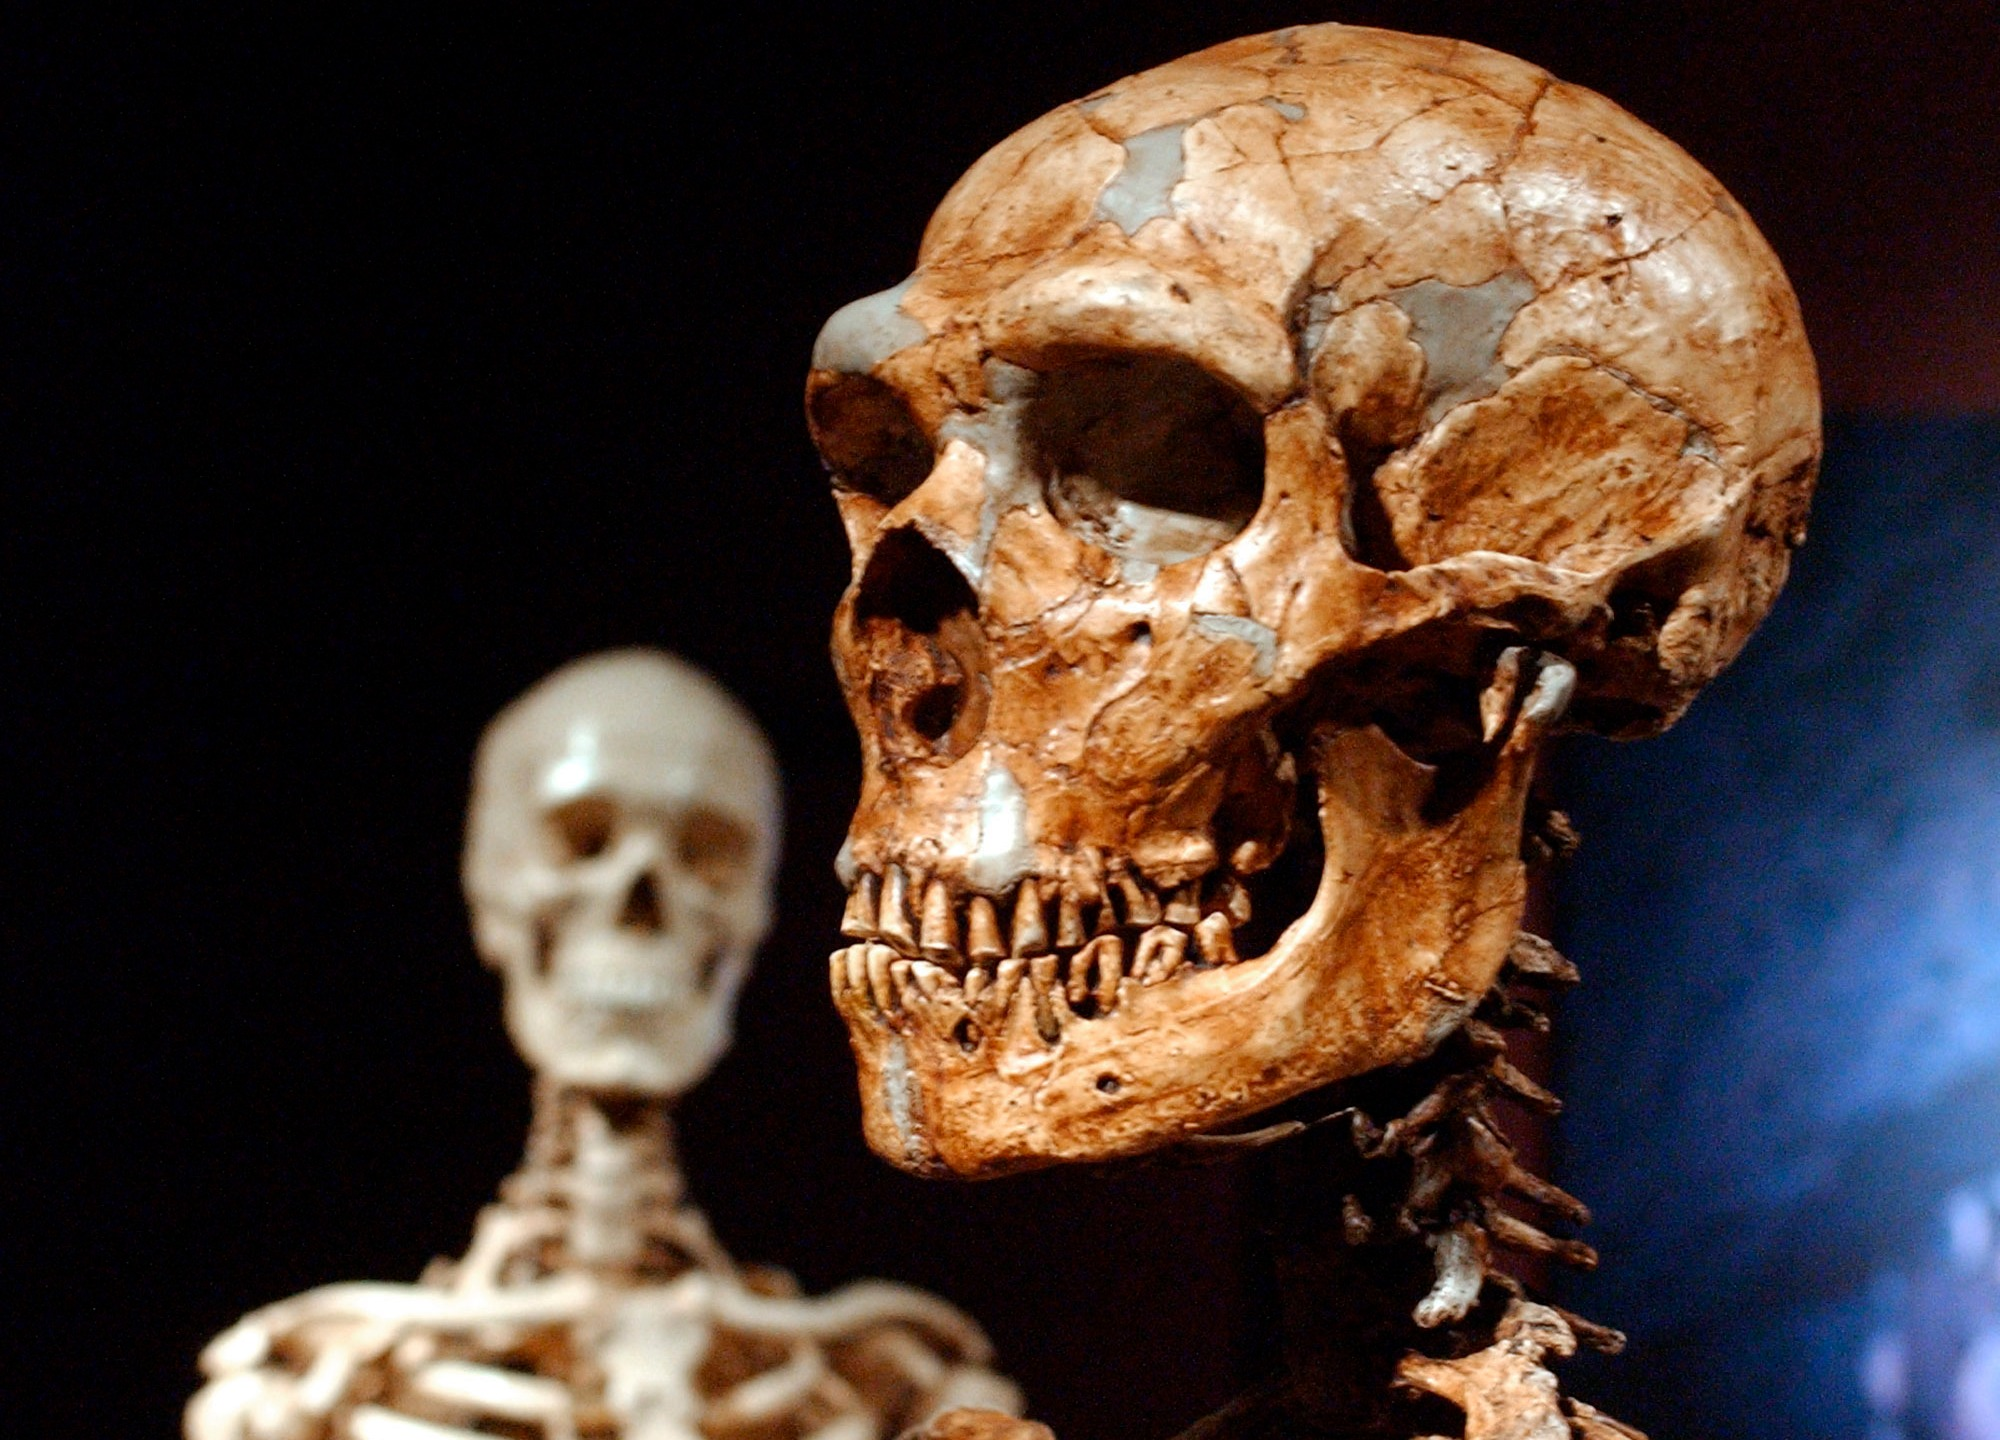 This Wednesday, Jan. 8, 2003 file photo shows a reconstructed Neanderthal skeleton, right, and a modern human skeleton on display at the Museum of Natural History in New York.